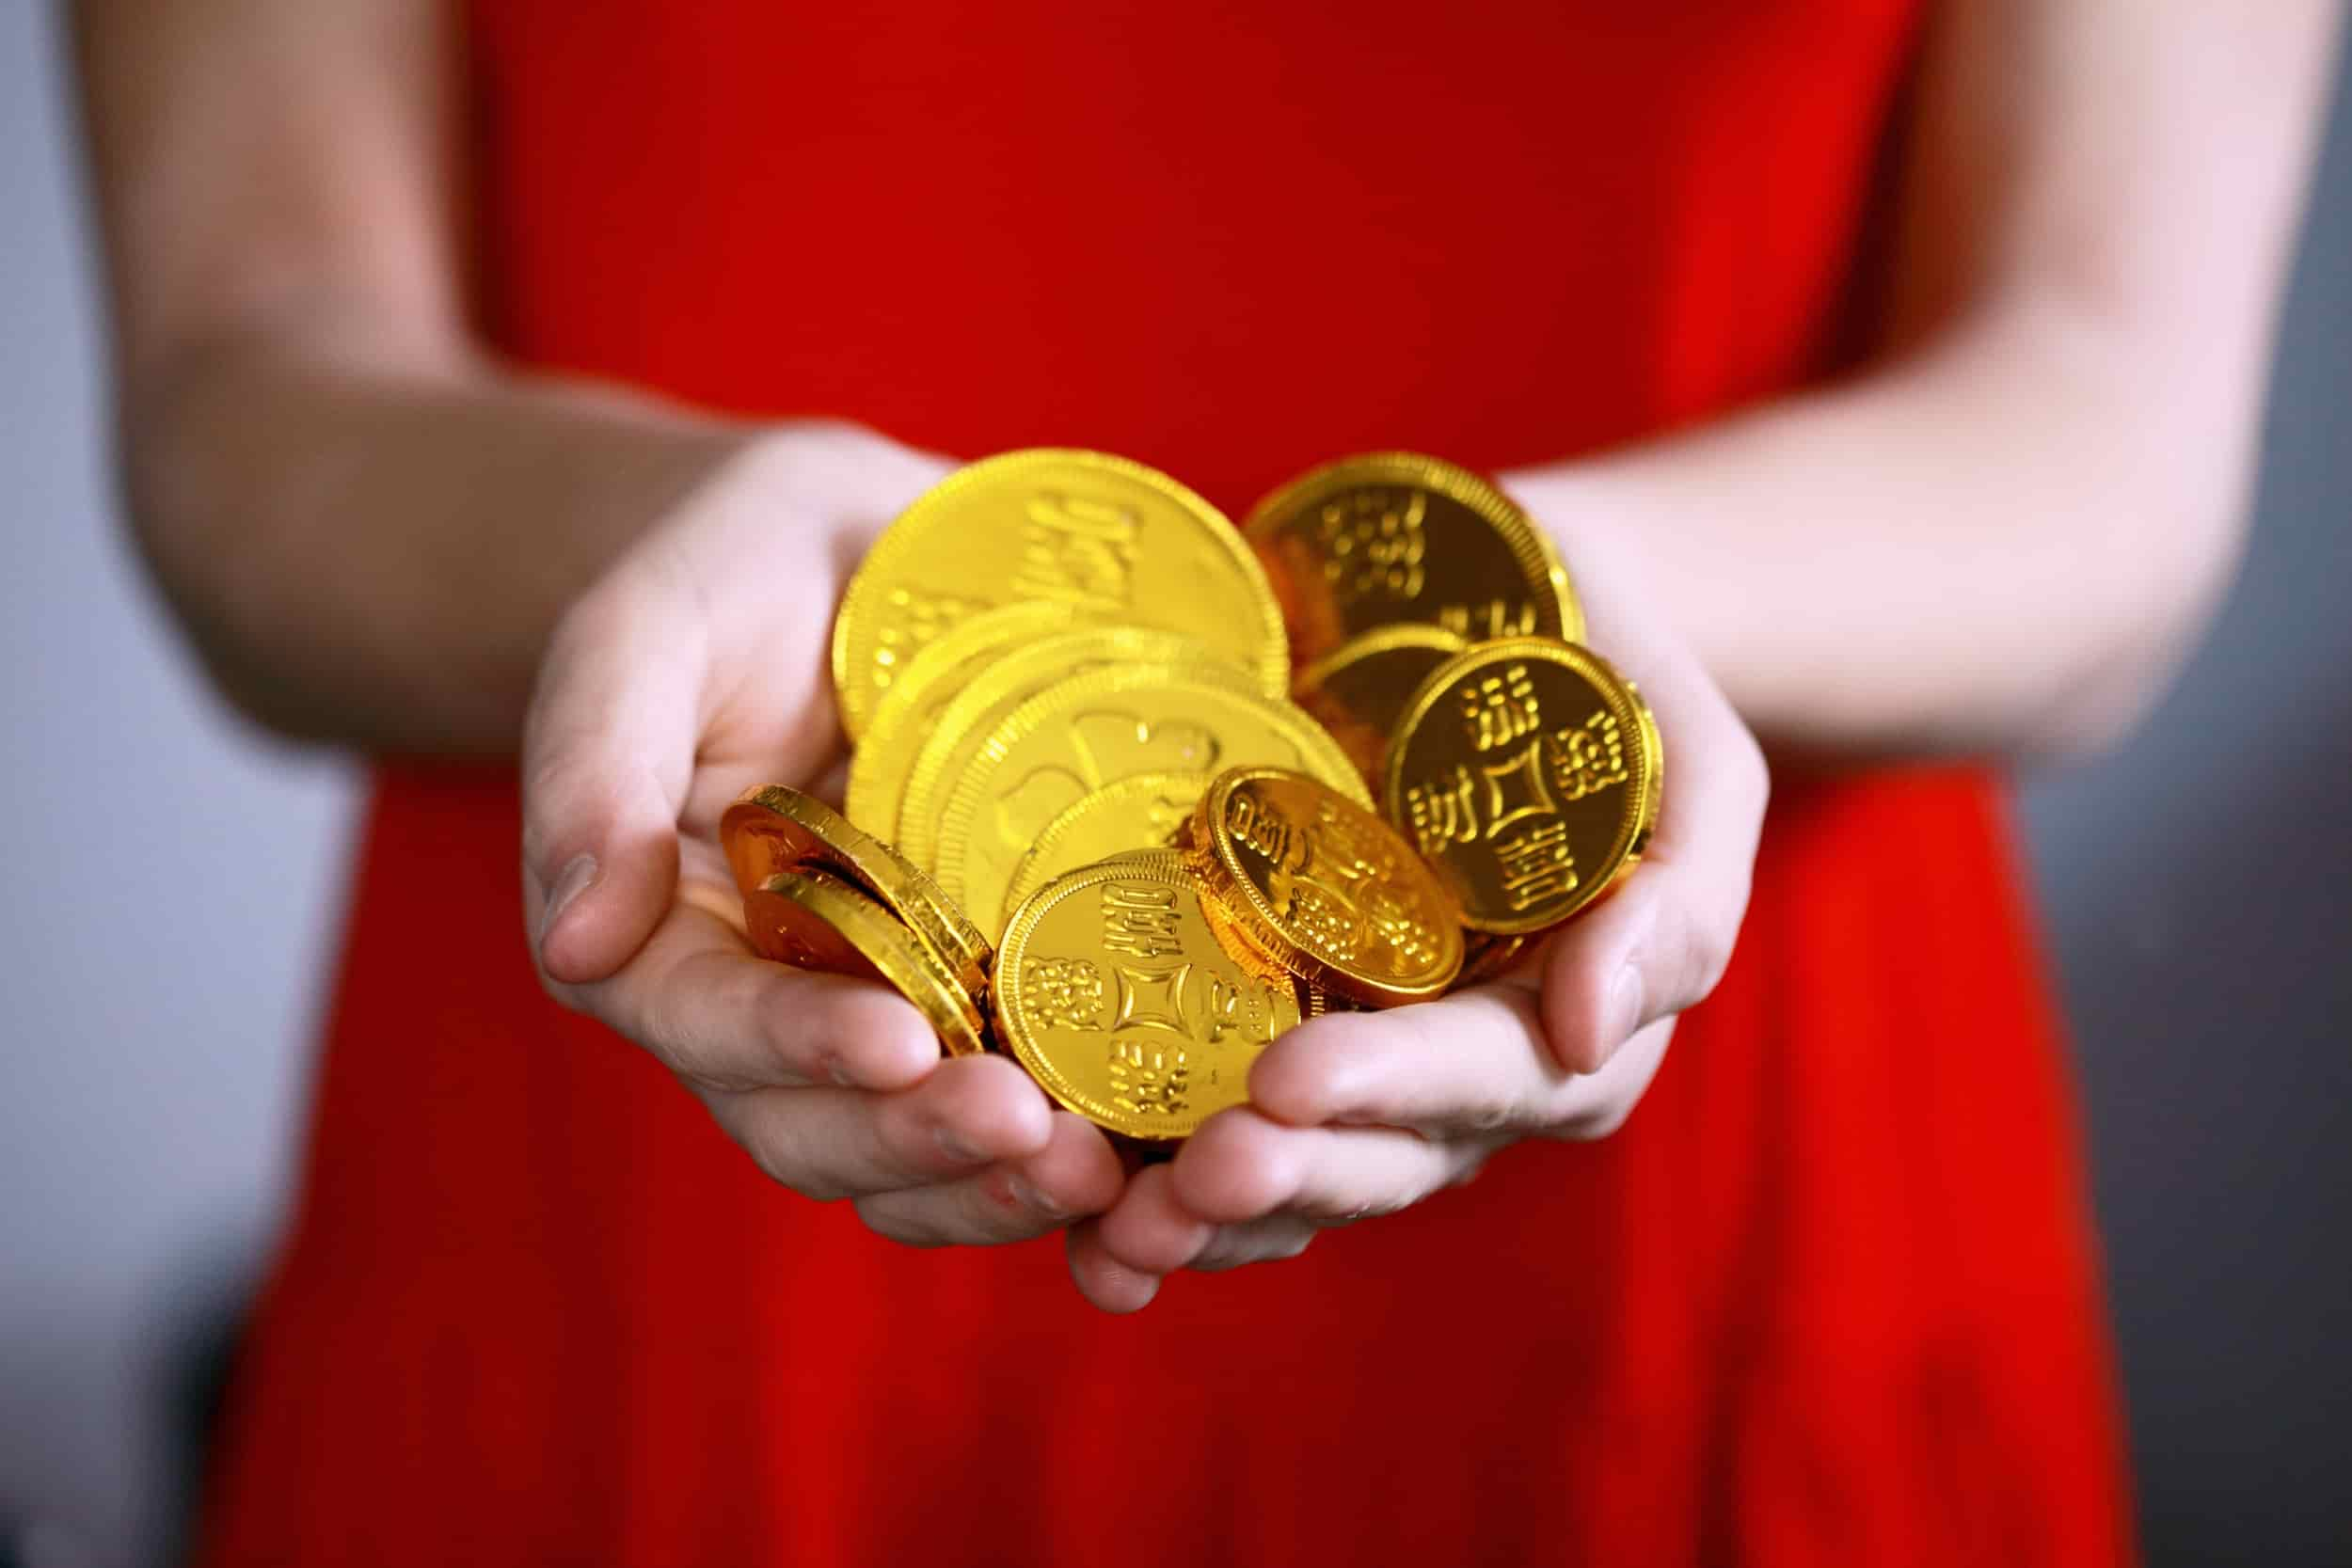 female office manager in red dress holding gold coins that she is responsible for managing